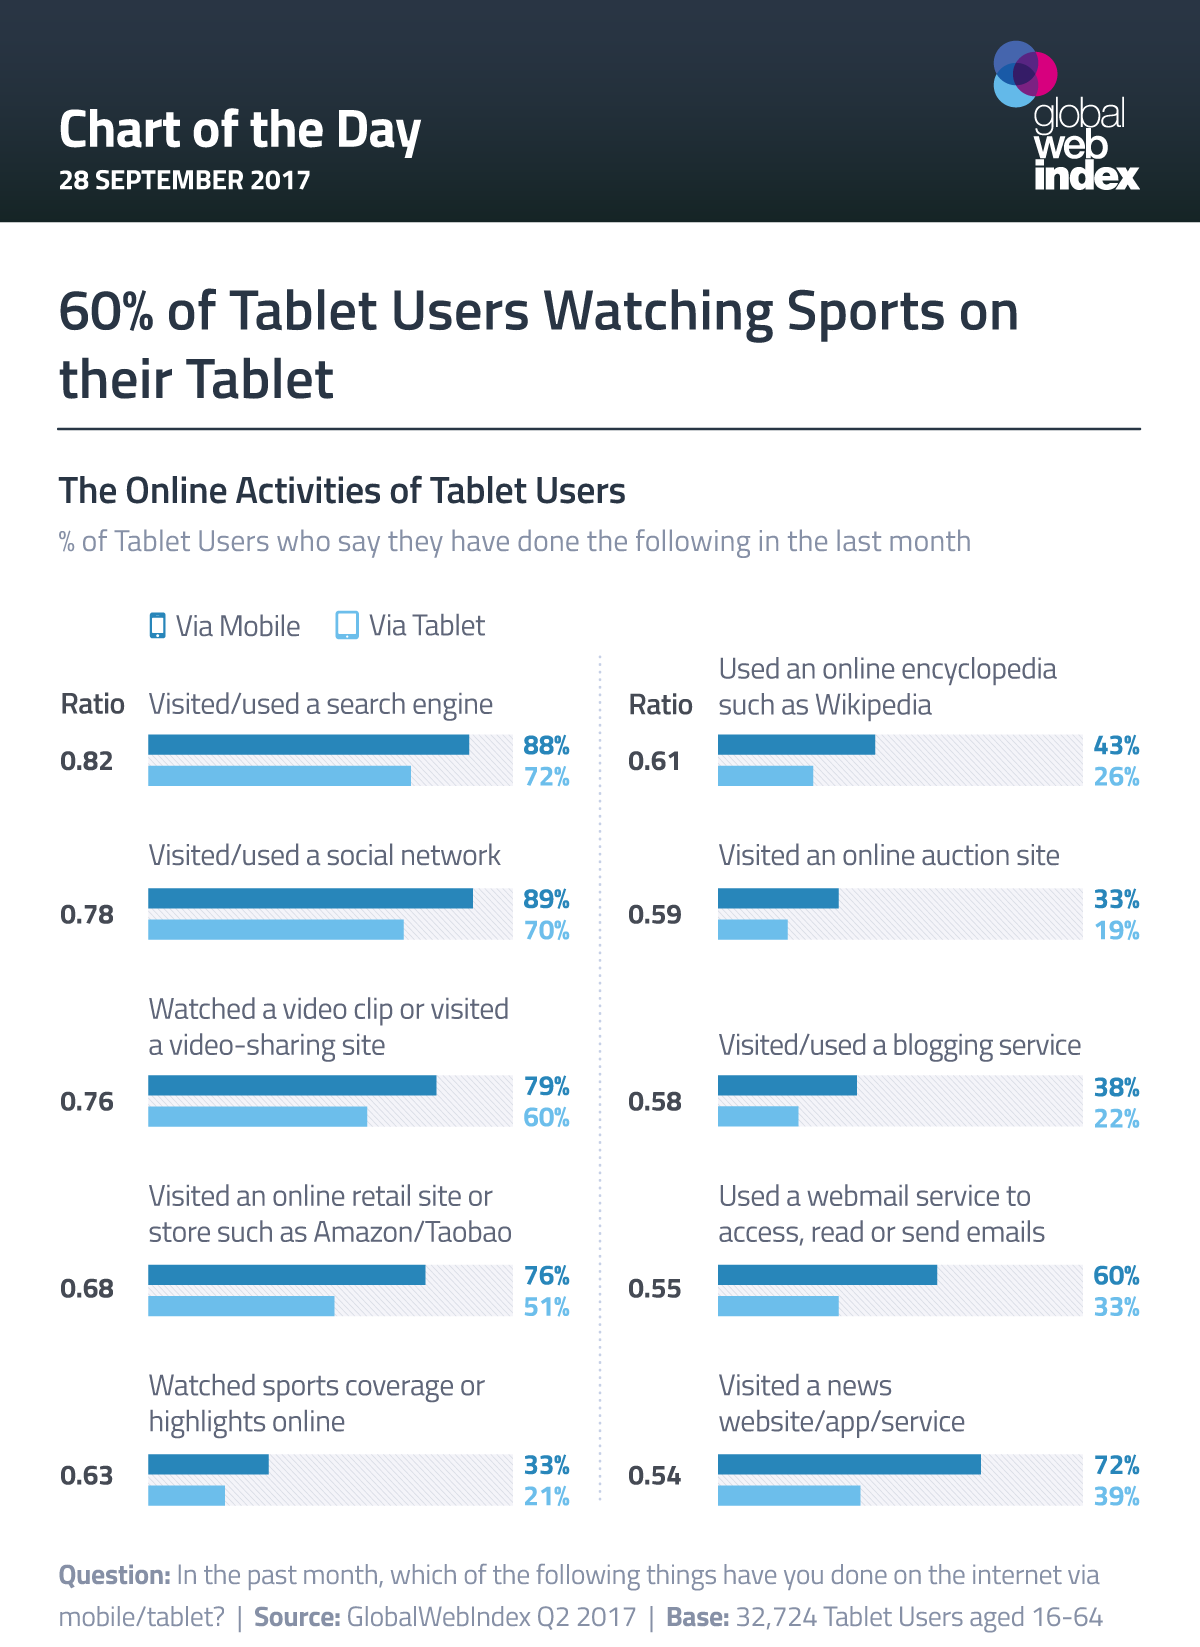 60% of Tablet Users Watching Sports on their Tablet